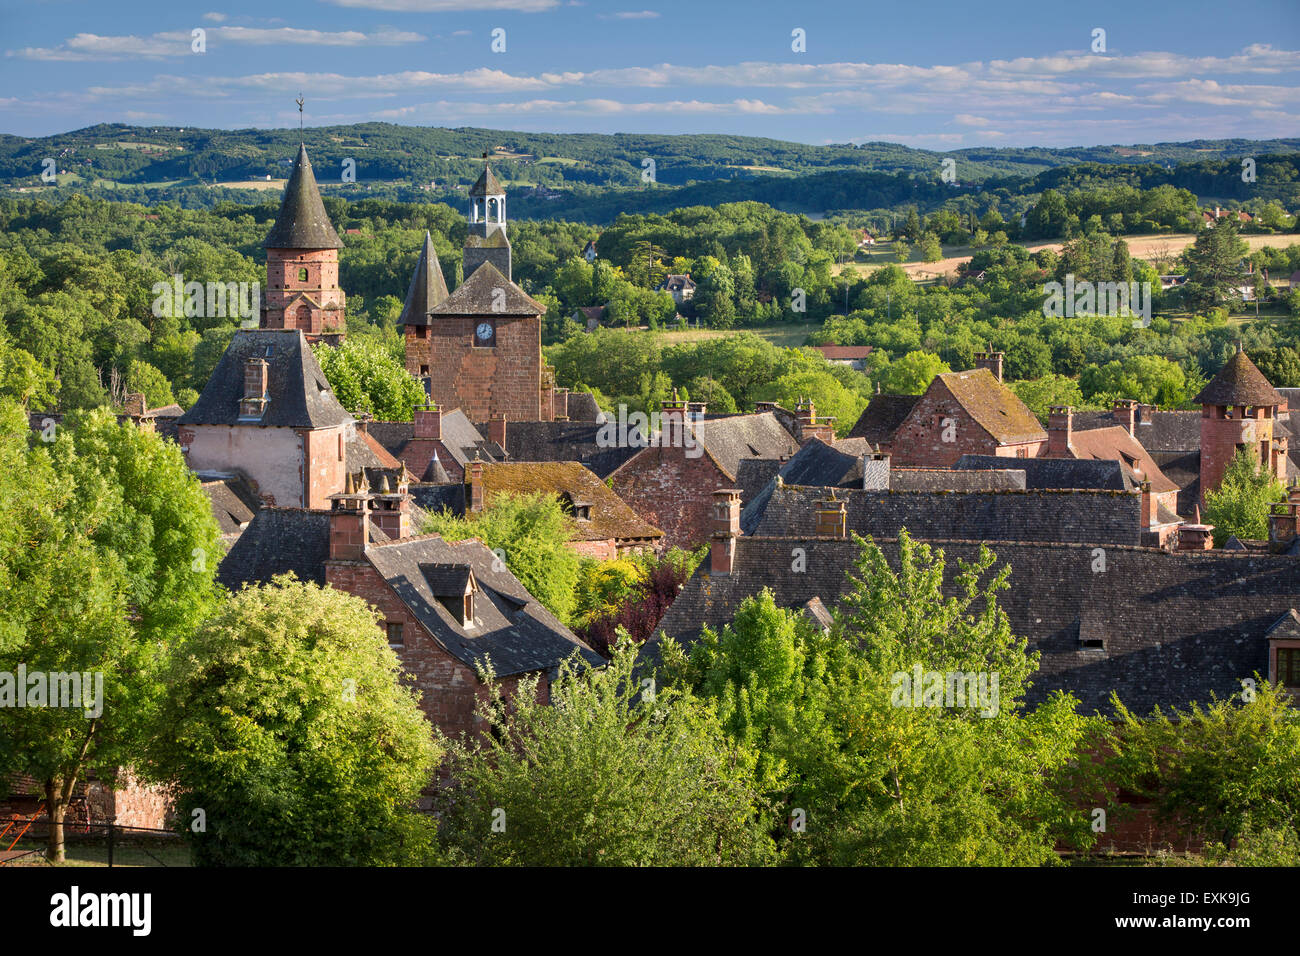 Evening sunlight over medieval town of Collonges-la-Rouge, in the ancient Department of Limousin, Correze, France - Stock Image